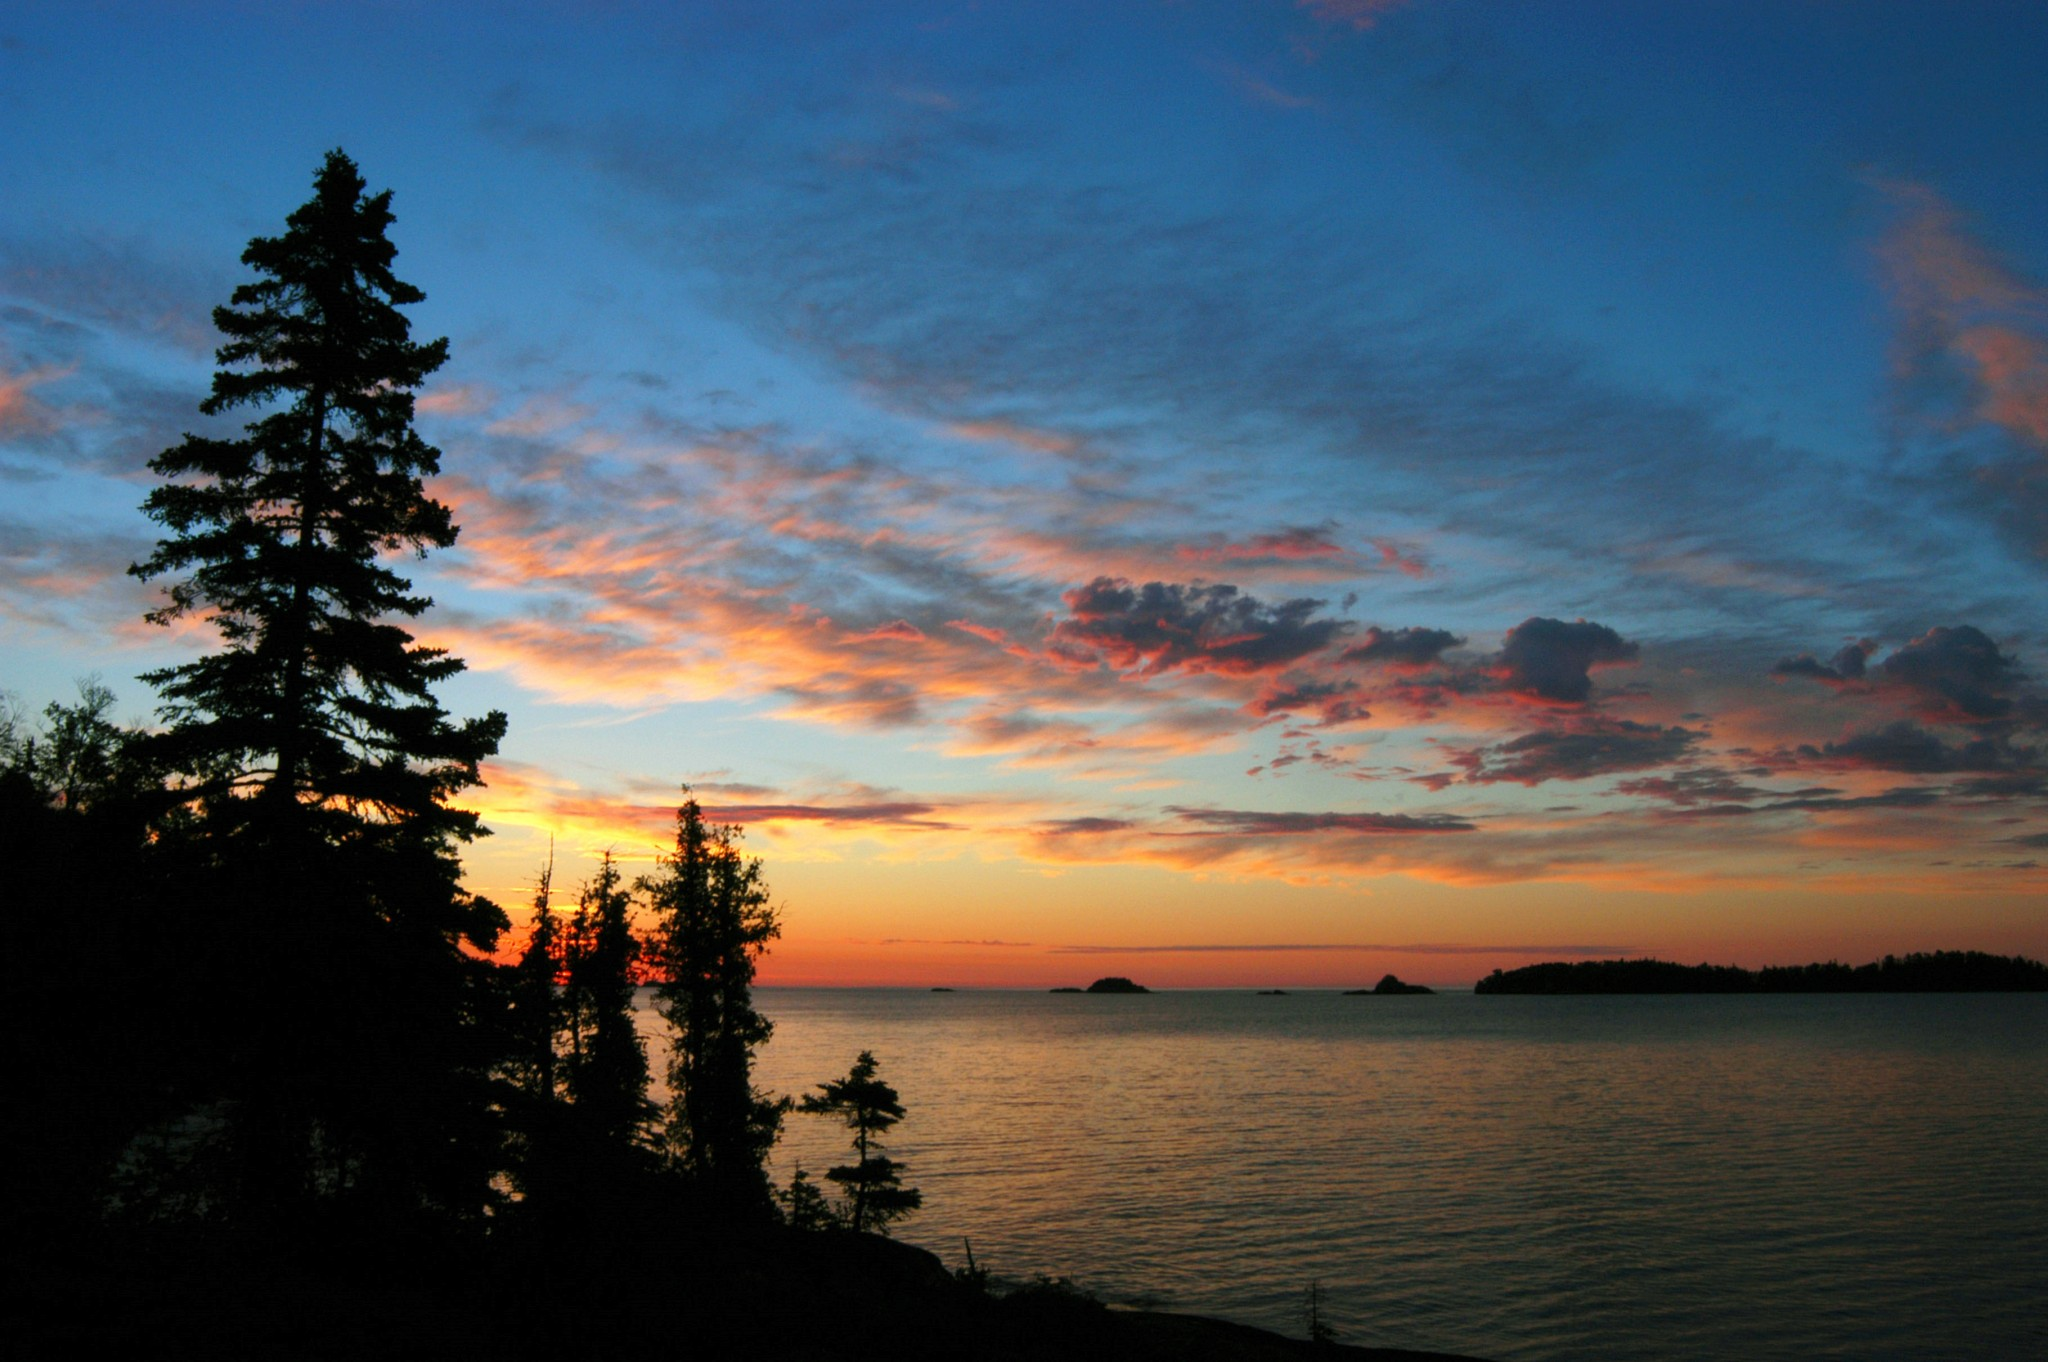 Dawn comes to Scoville Point on Isle Royale National Park. (Photo by Art Weber)